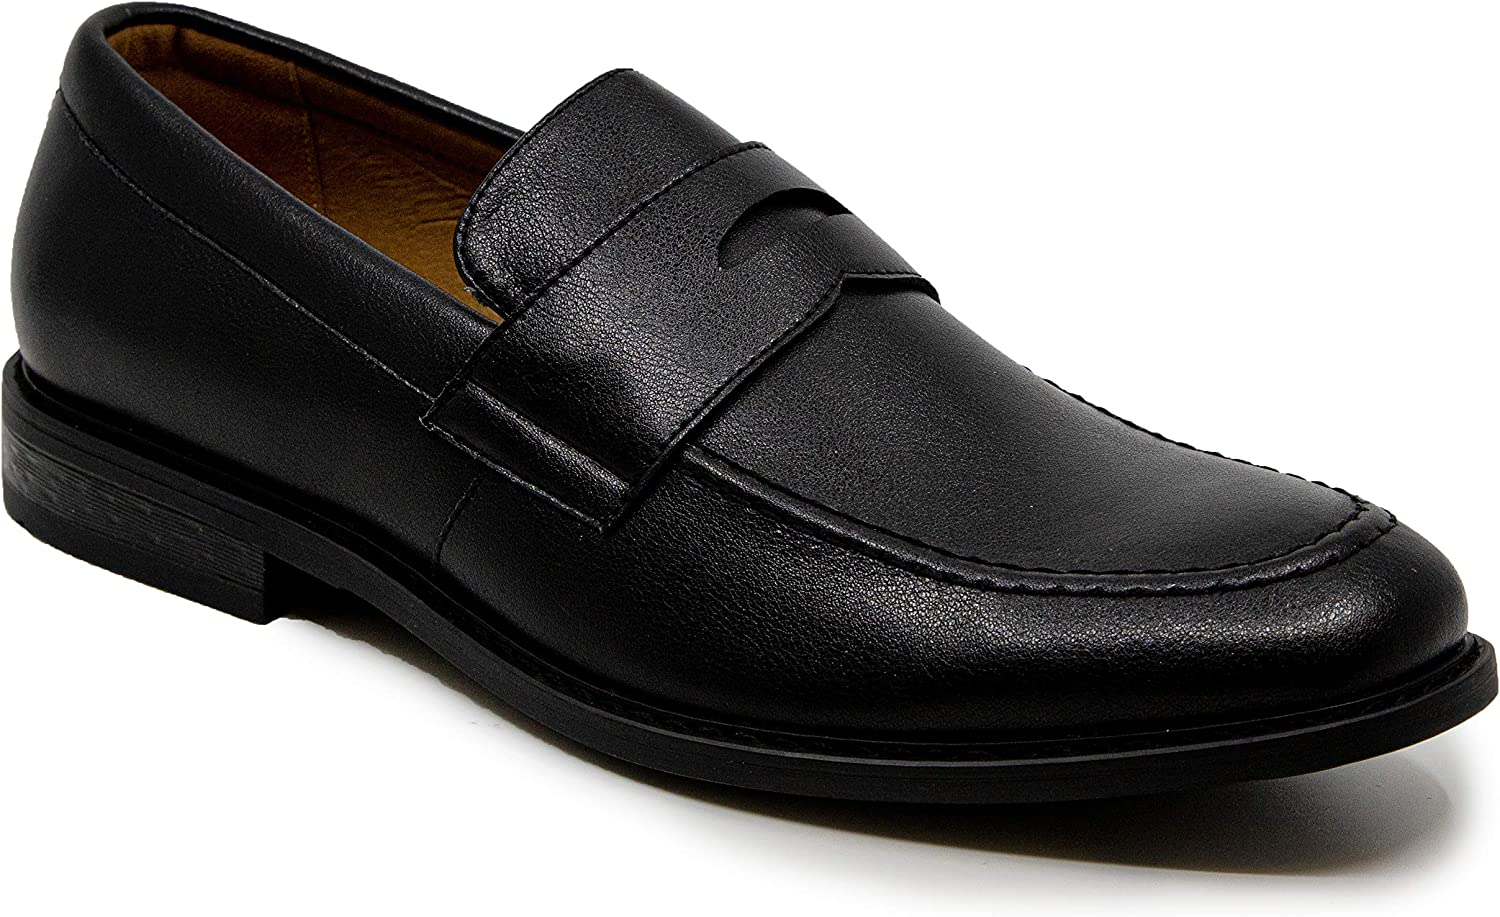 Nautica Mens Dress Shoes Slip On Oxford Moc Toe Loafer